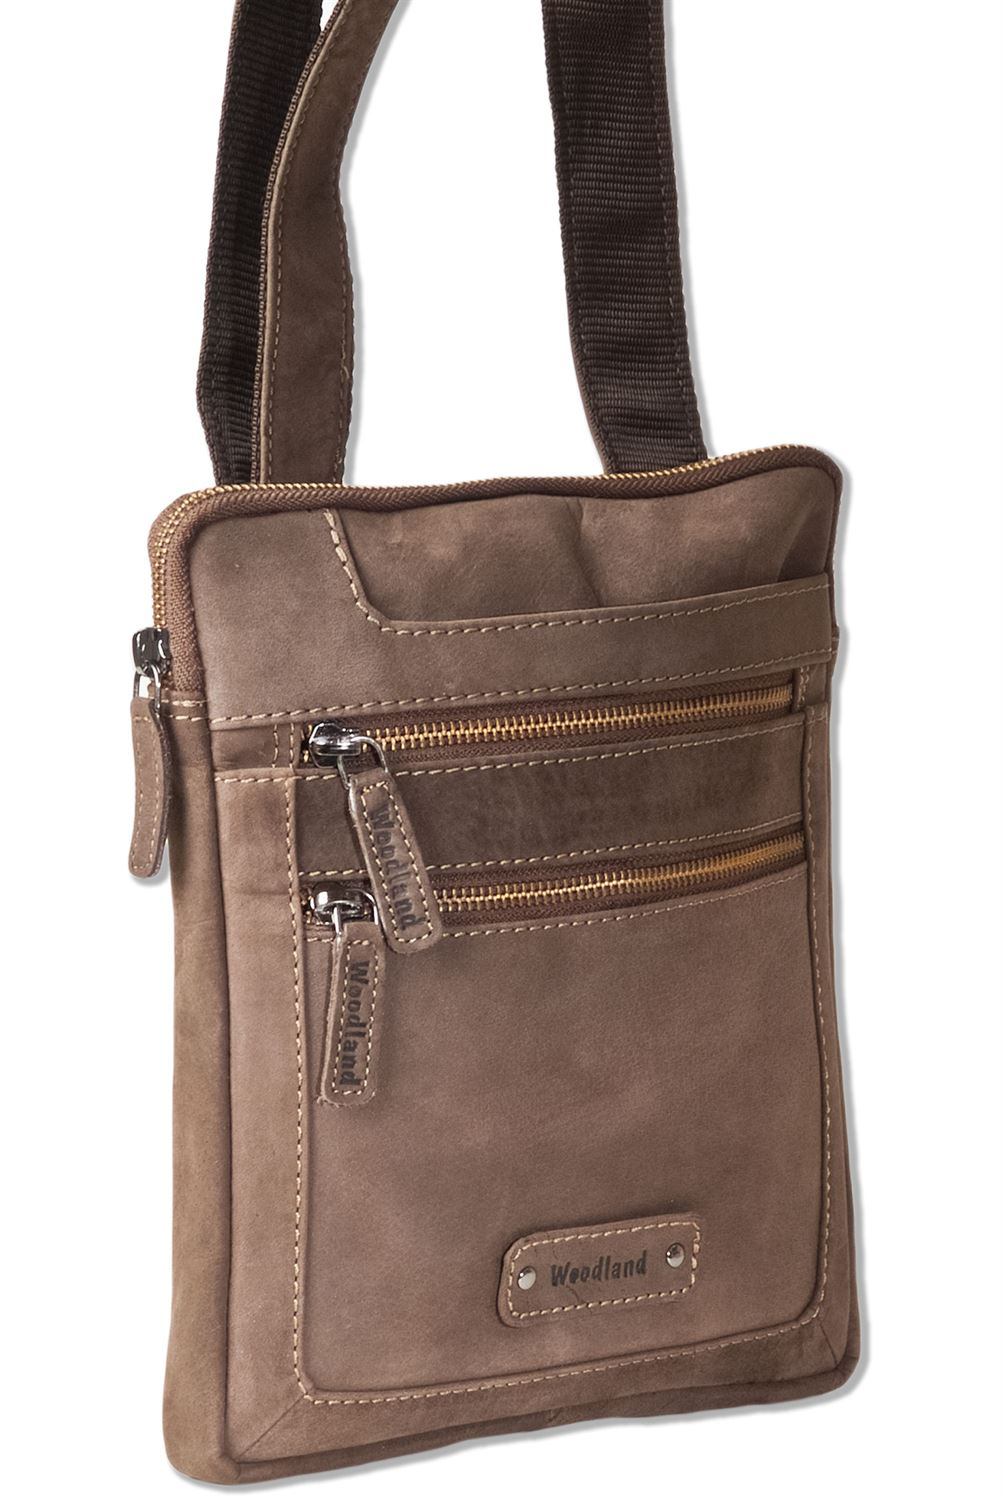 Woodland® natural buffalo leather shoulder bag in dark brown   taupe-6842907 188a1865ea93b